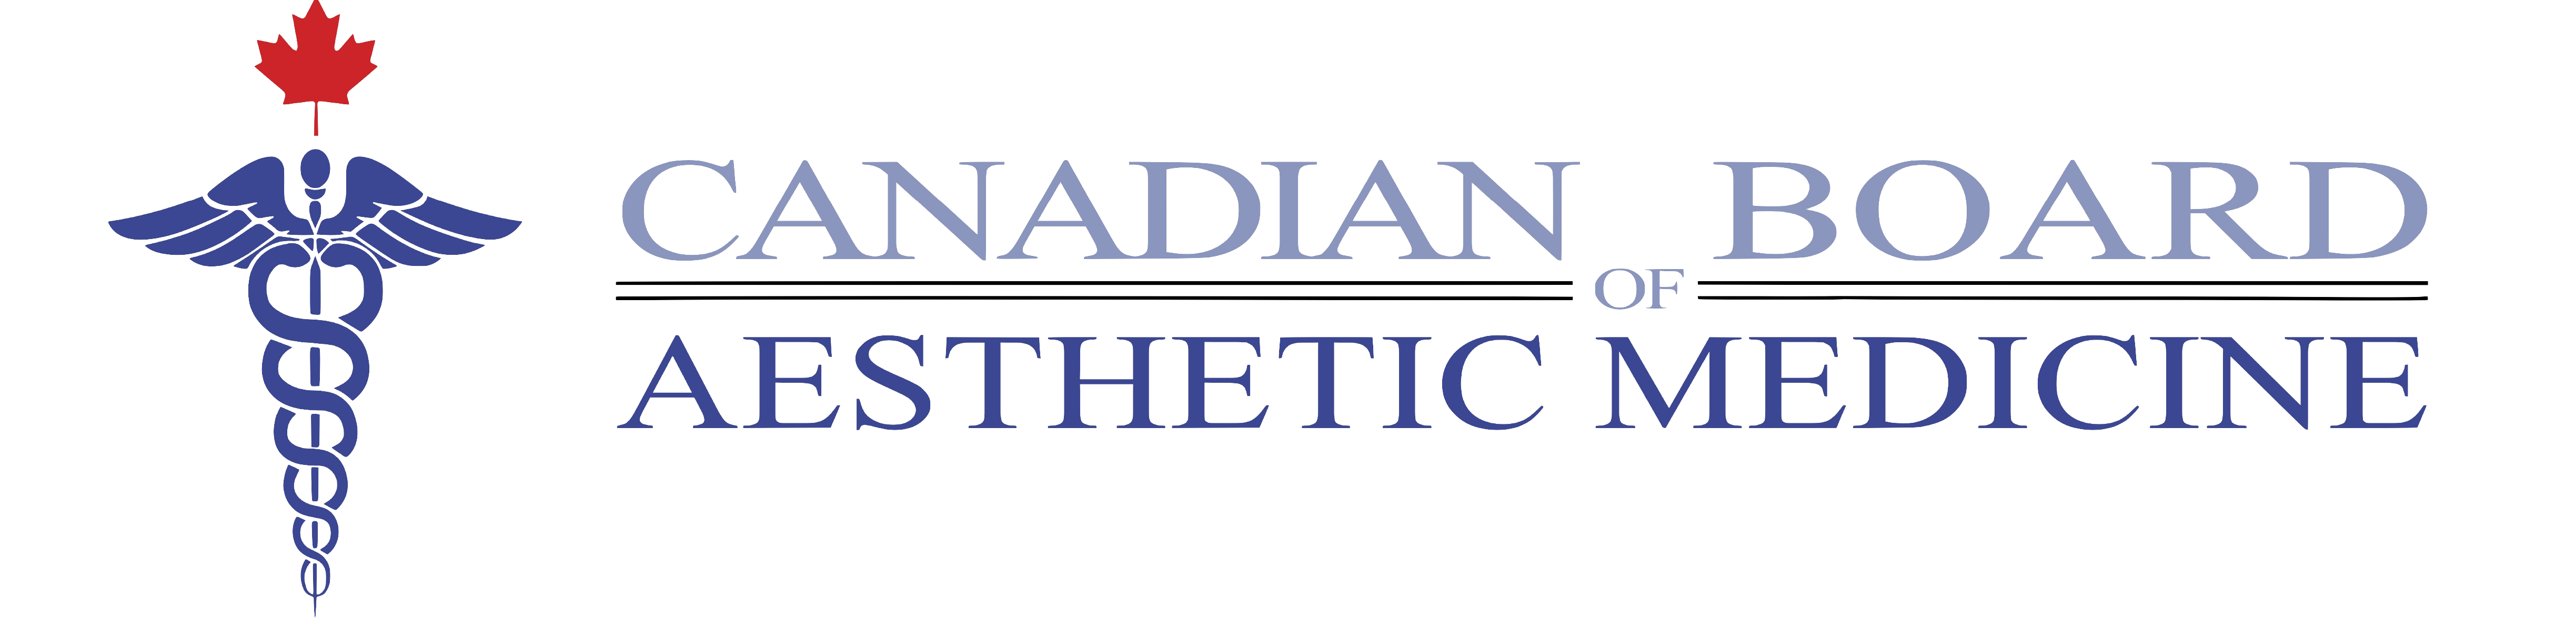 Cbam, botox and filler courses, online aesthetic course, aesthetic board certified, aesthetic diploma, iv nutrition therapy, Prp, mesotherapy, microneedling, facial anatomy cadaver lab, toronto, Vancouver, ottawa, calgary, edmonton, montreal